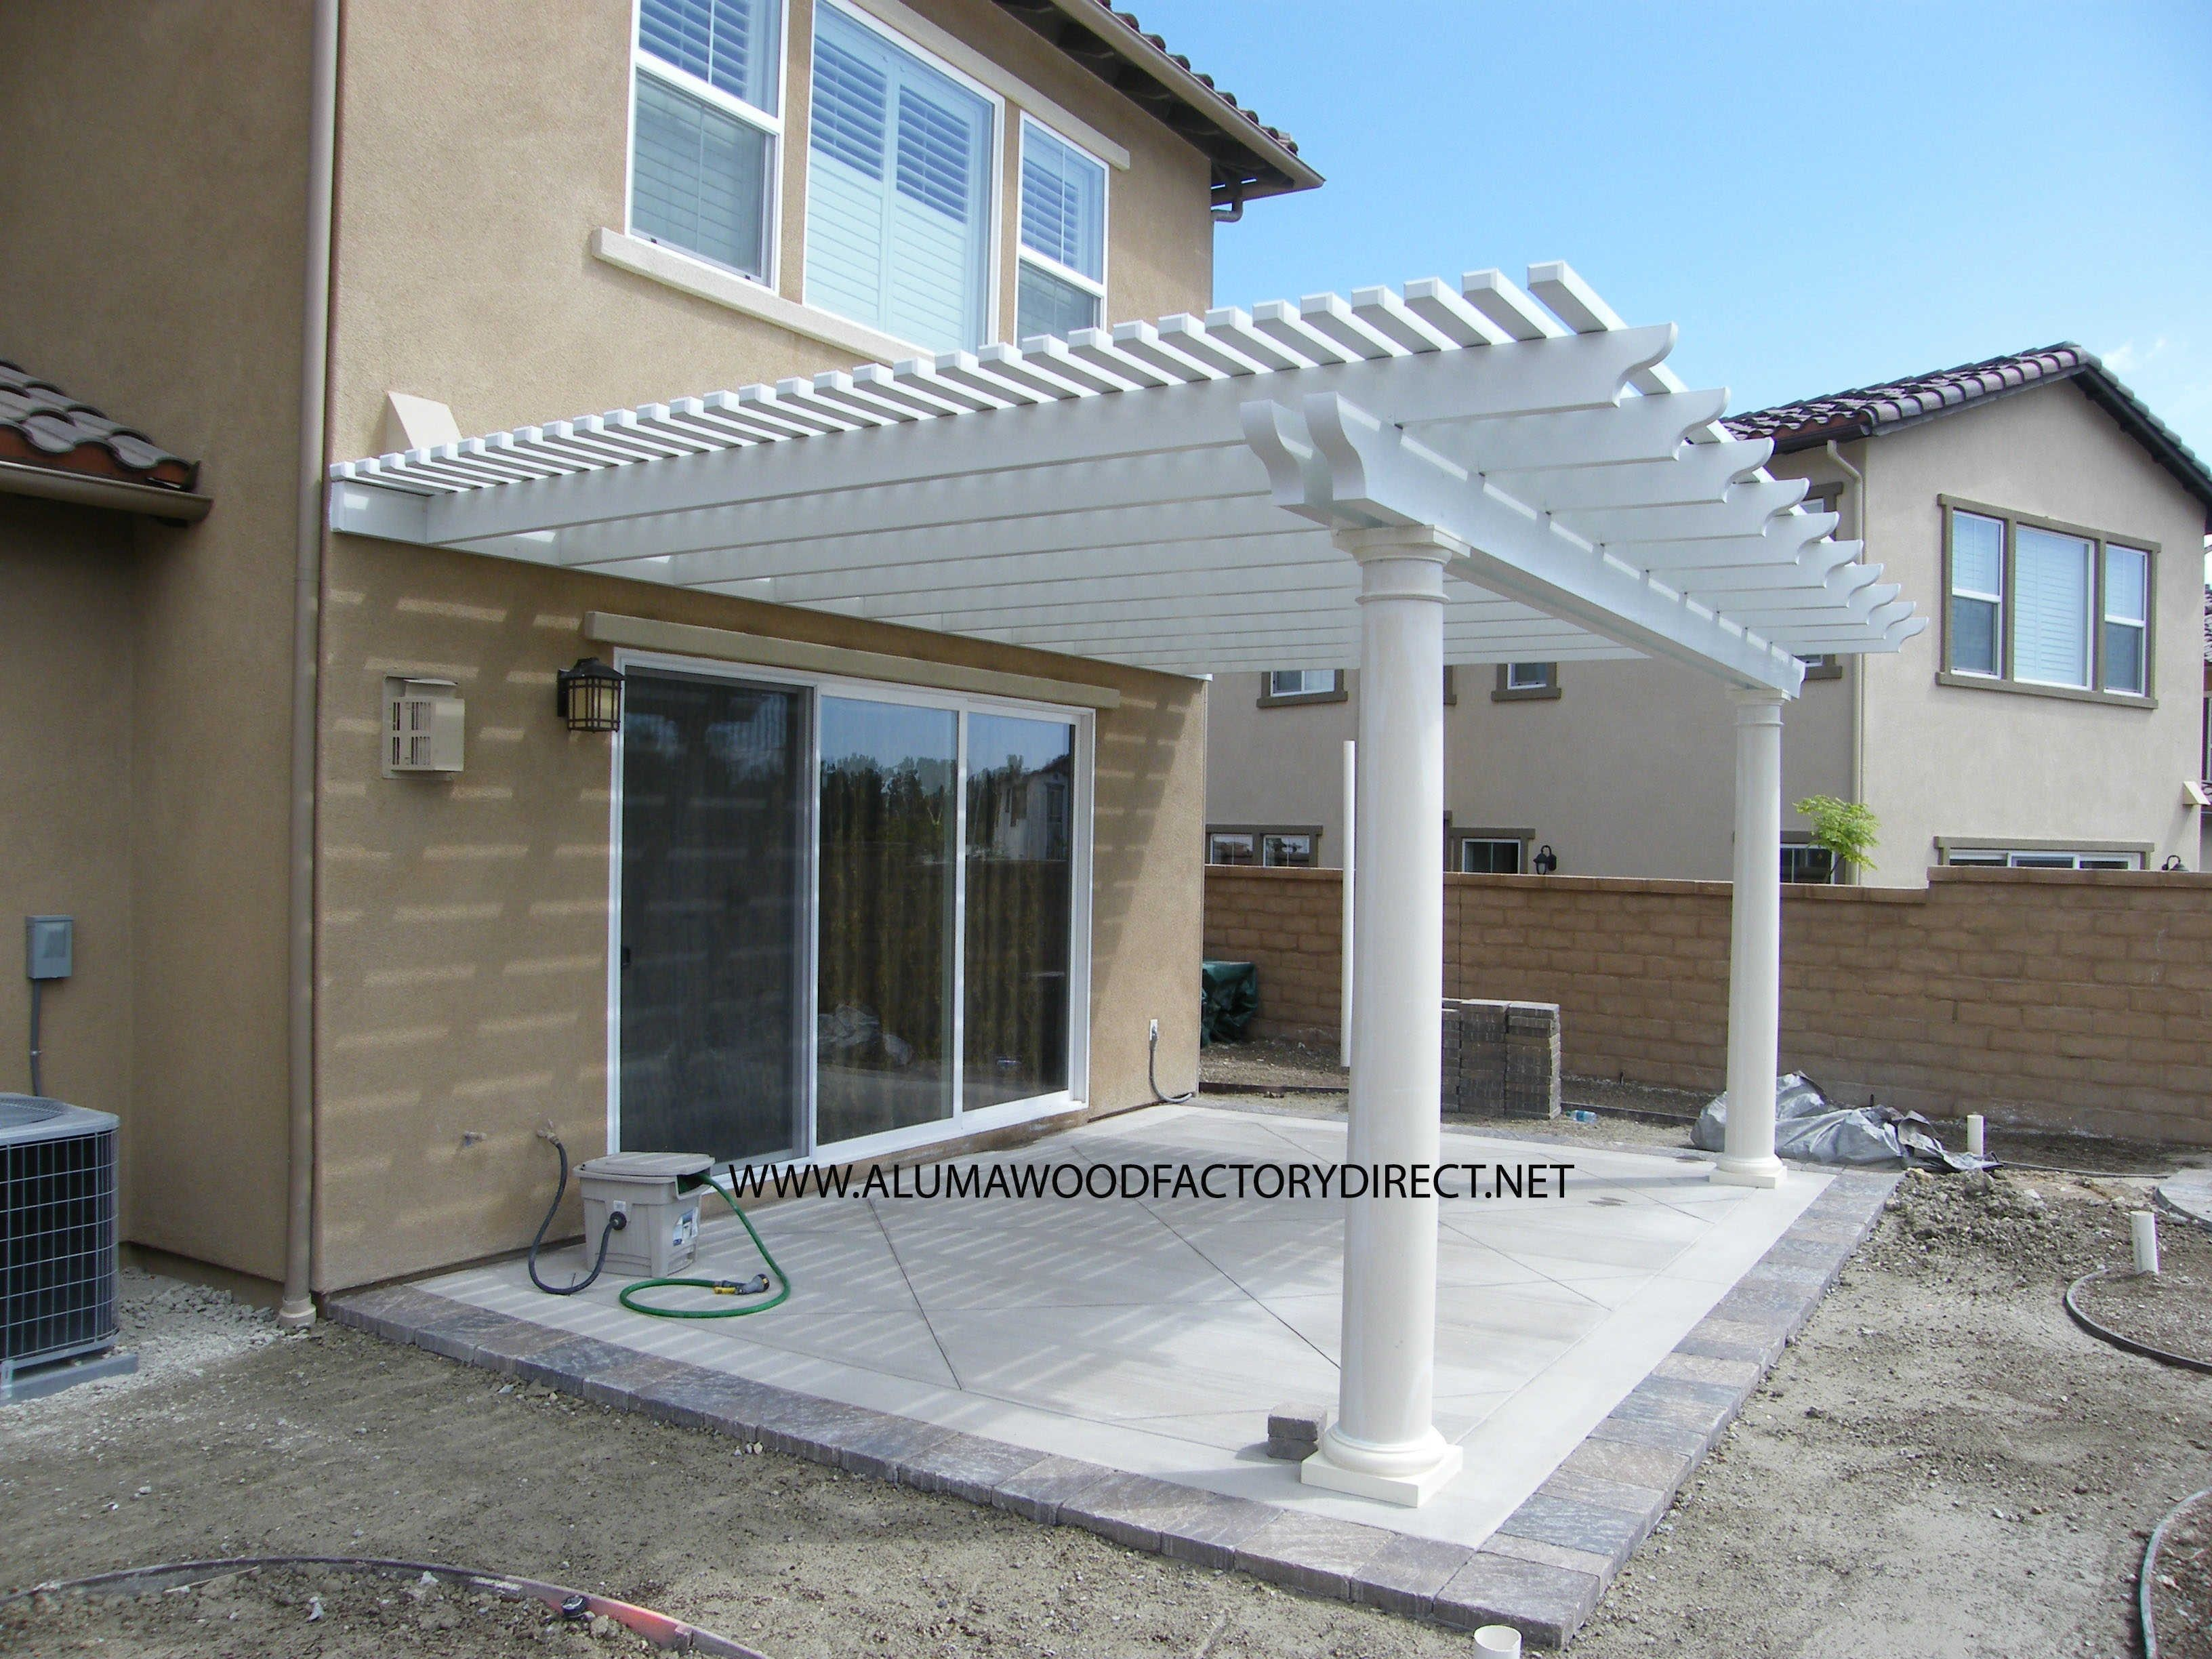 Everything You Need To Know About 10x20 Patio Ideas Bw07zu Https Sanantoniohomeinspector Biz Everything Yo Pergola Plans Roofs Covered Patio Building A Patio